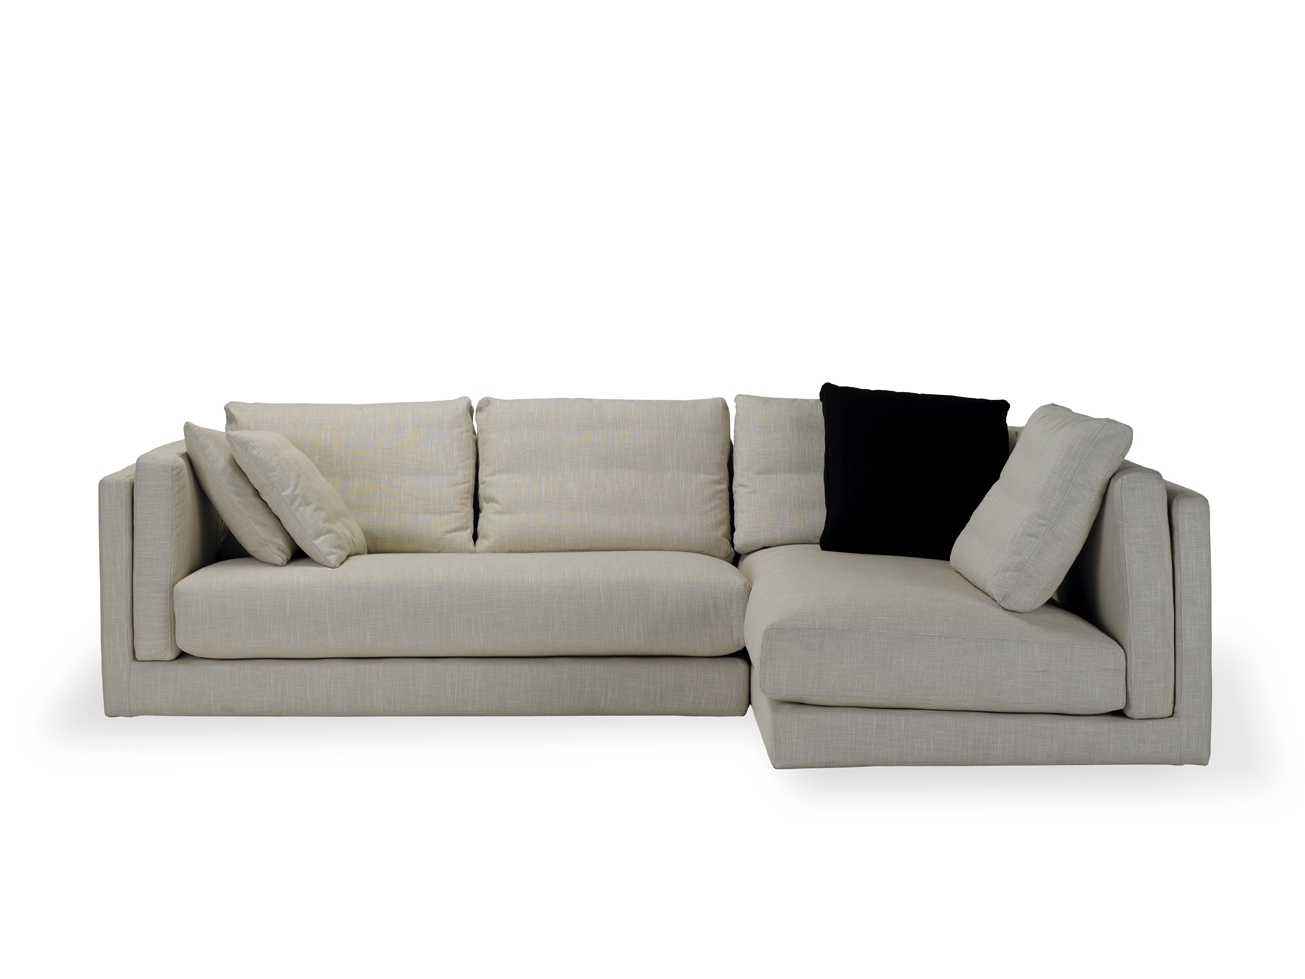 Domison » Mirabel Sofa Within Current Low Sofas (View 2 of 15)